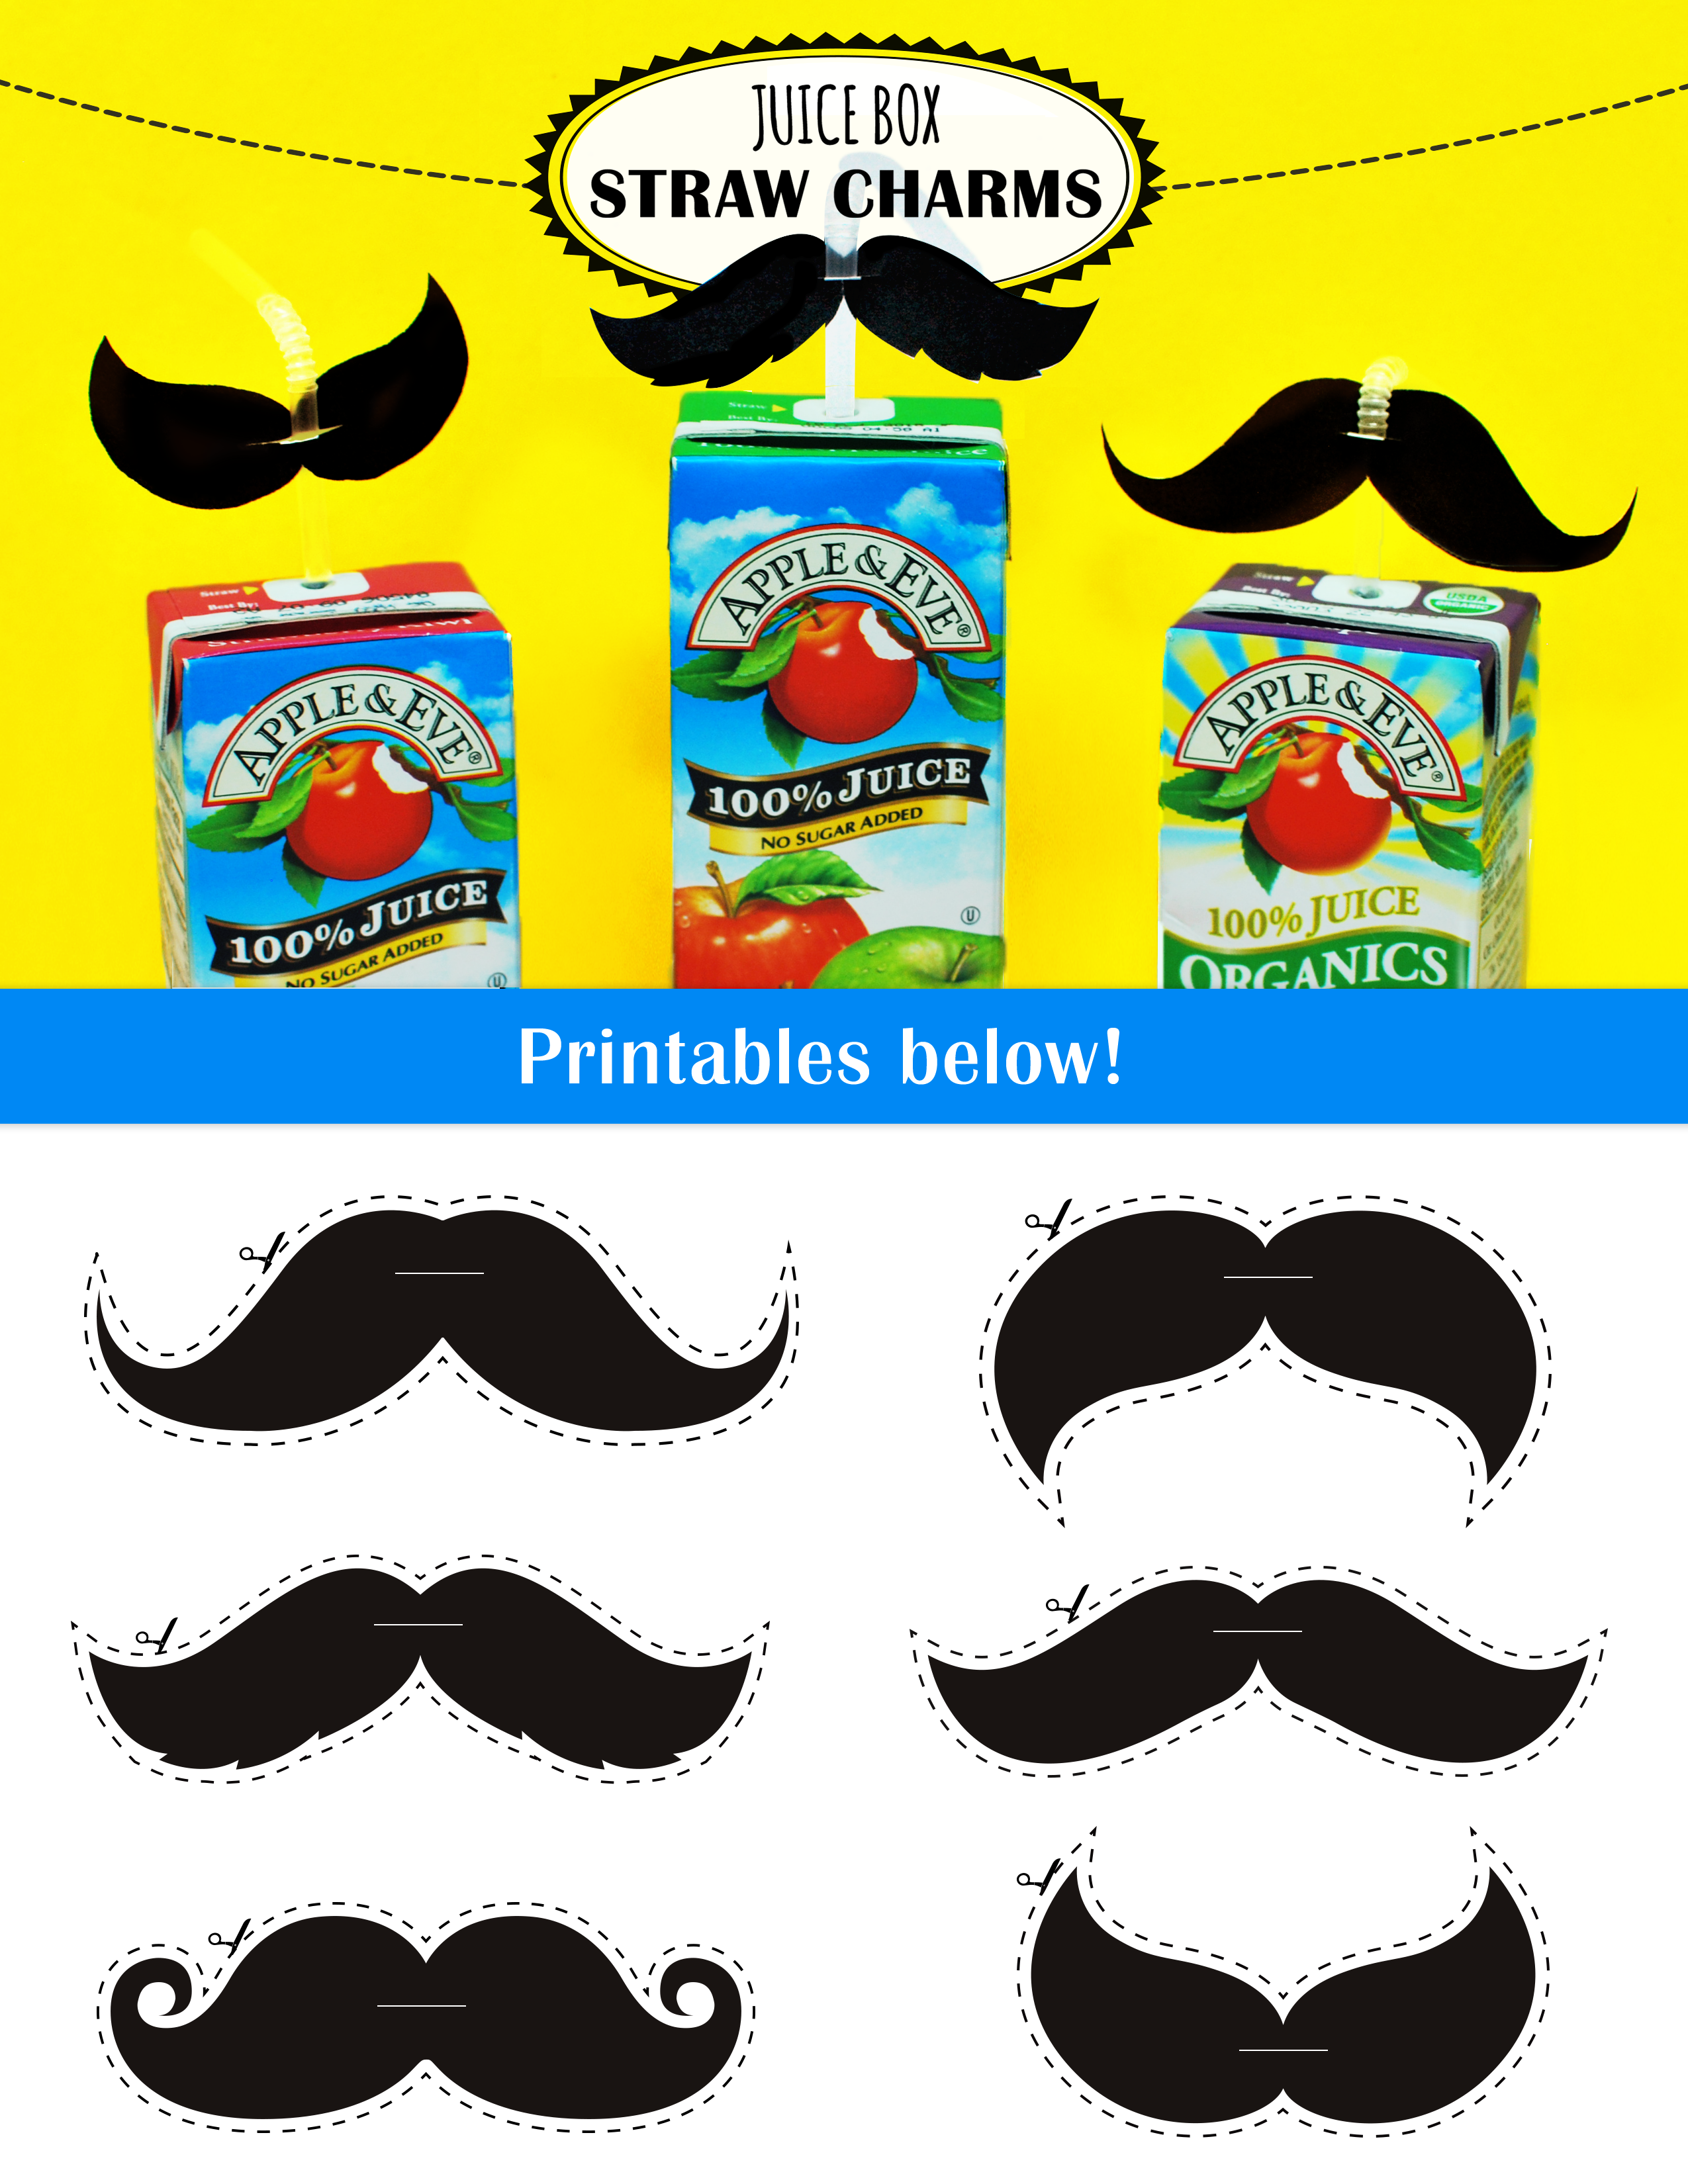 Print Out These Awesome Mustaches For The Kids Juice Box